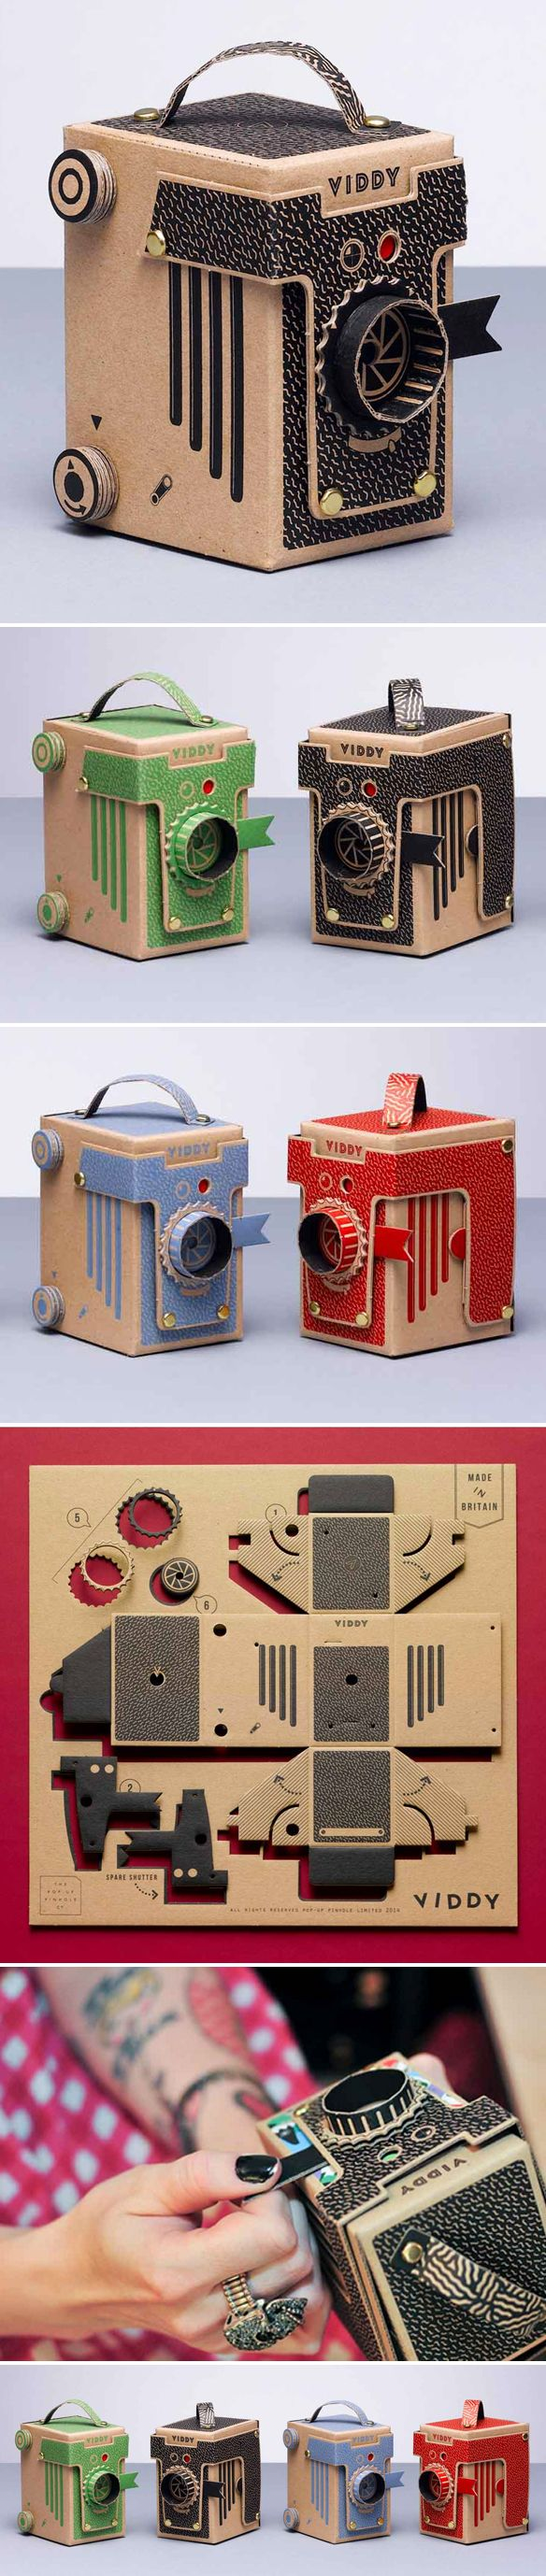 screenprinted, DIY pinhole camera